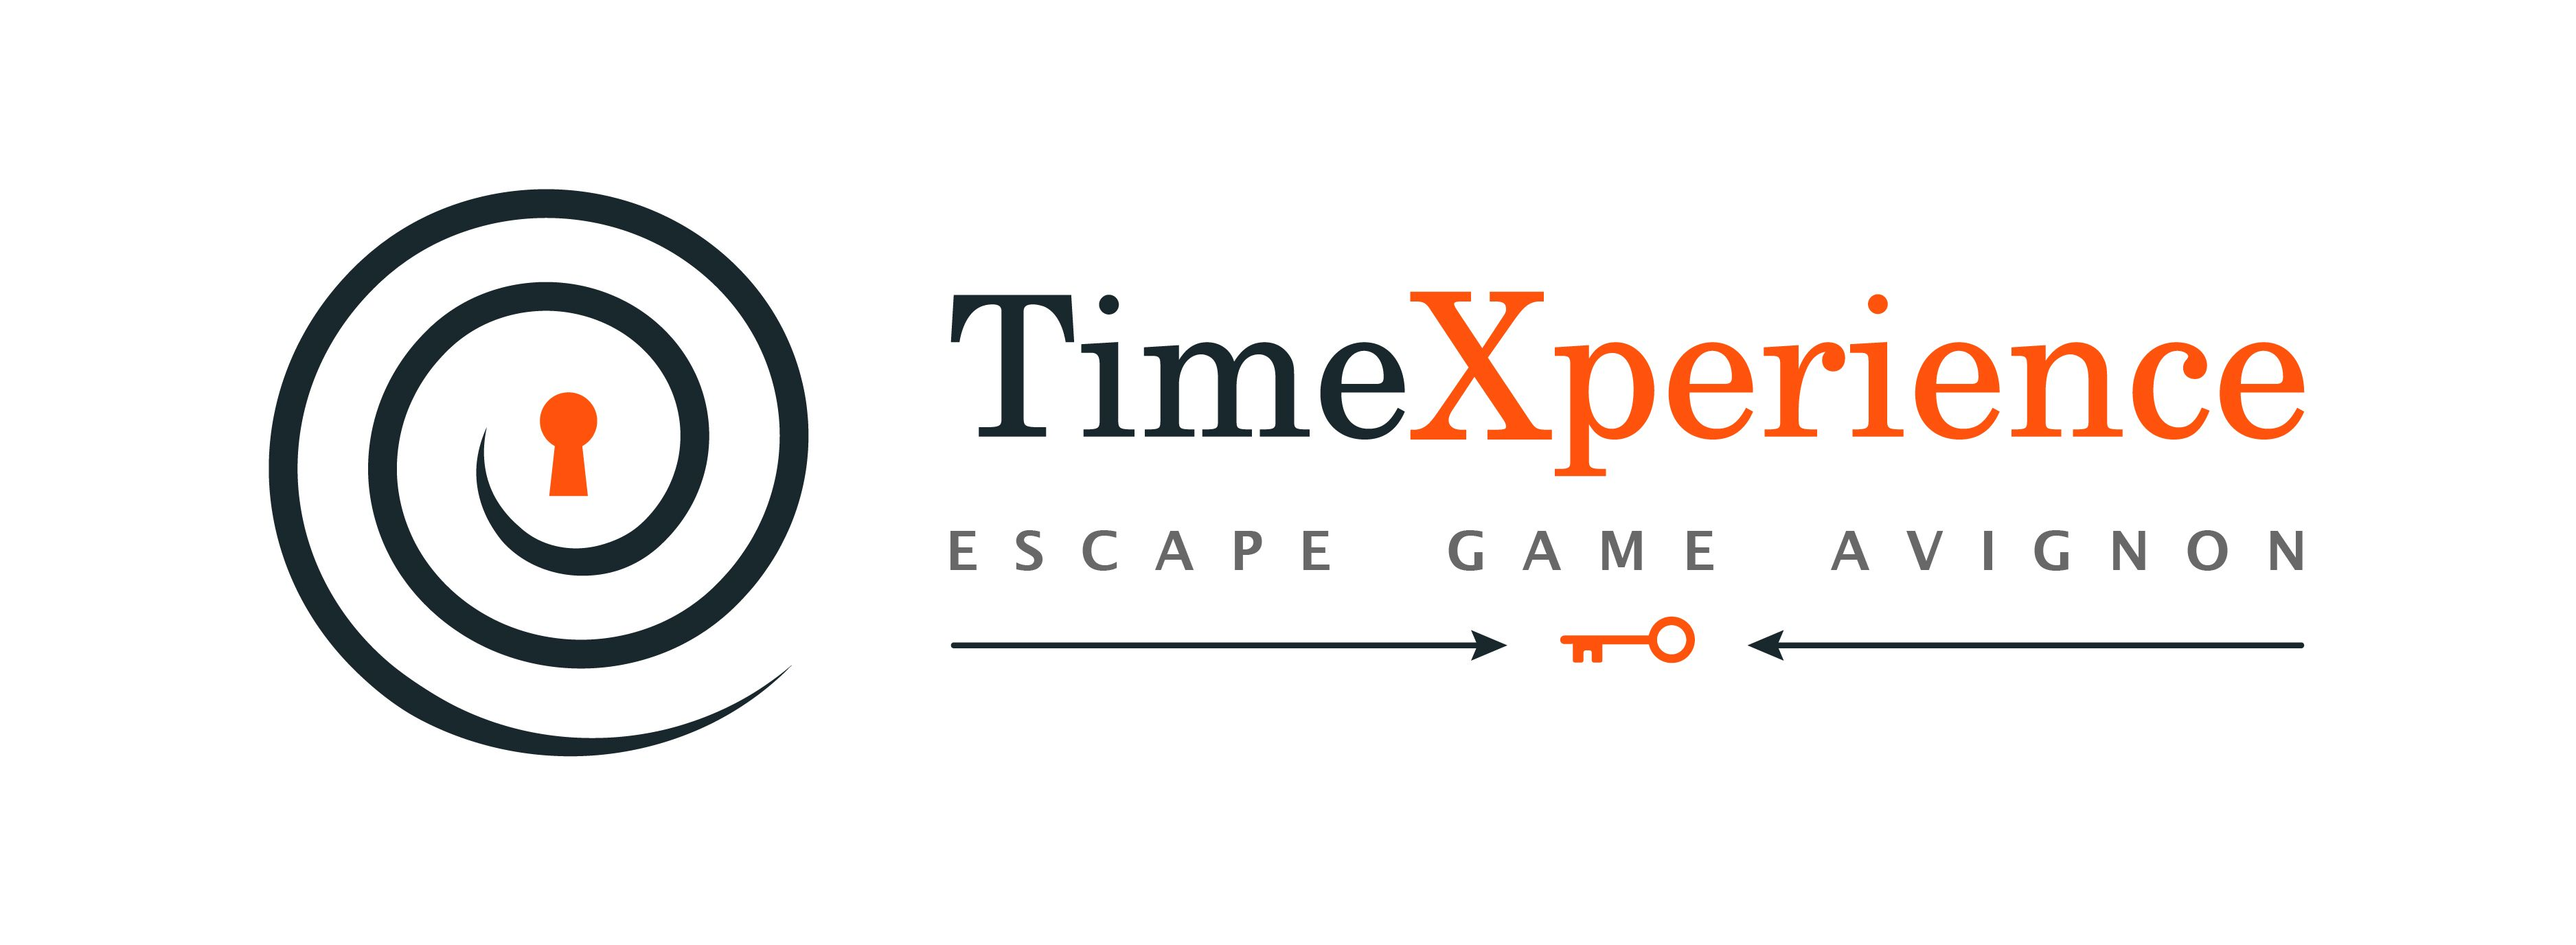 Timexperience - Escape Game Avignon